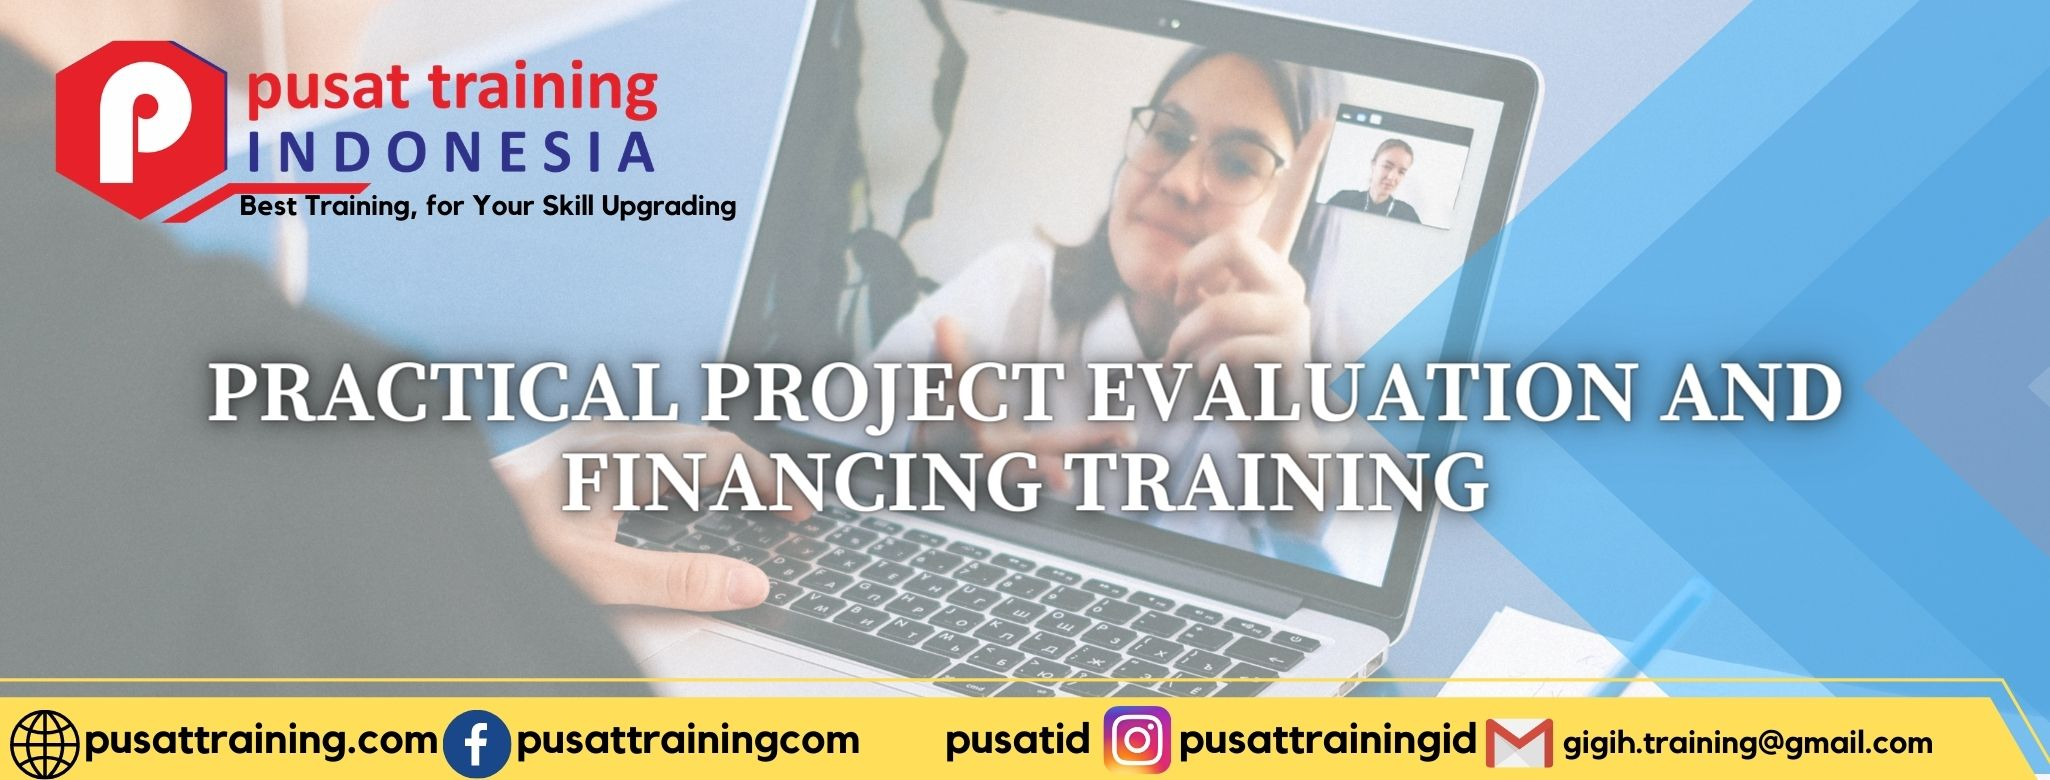 pratical-project-evaluation-and-financing-training